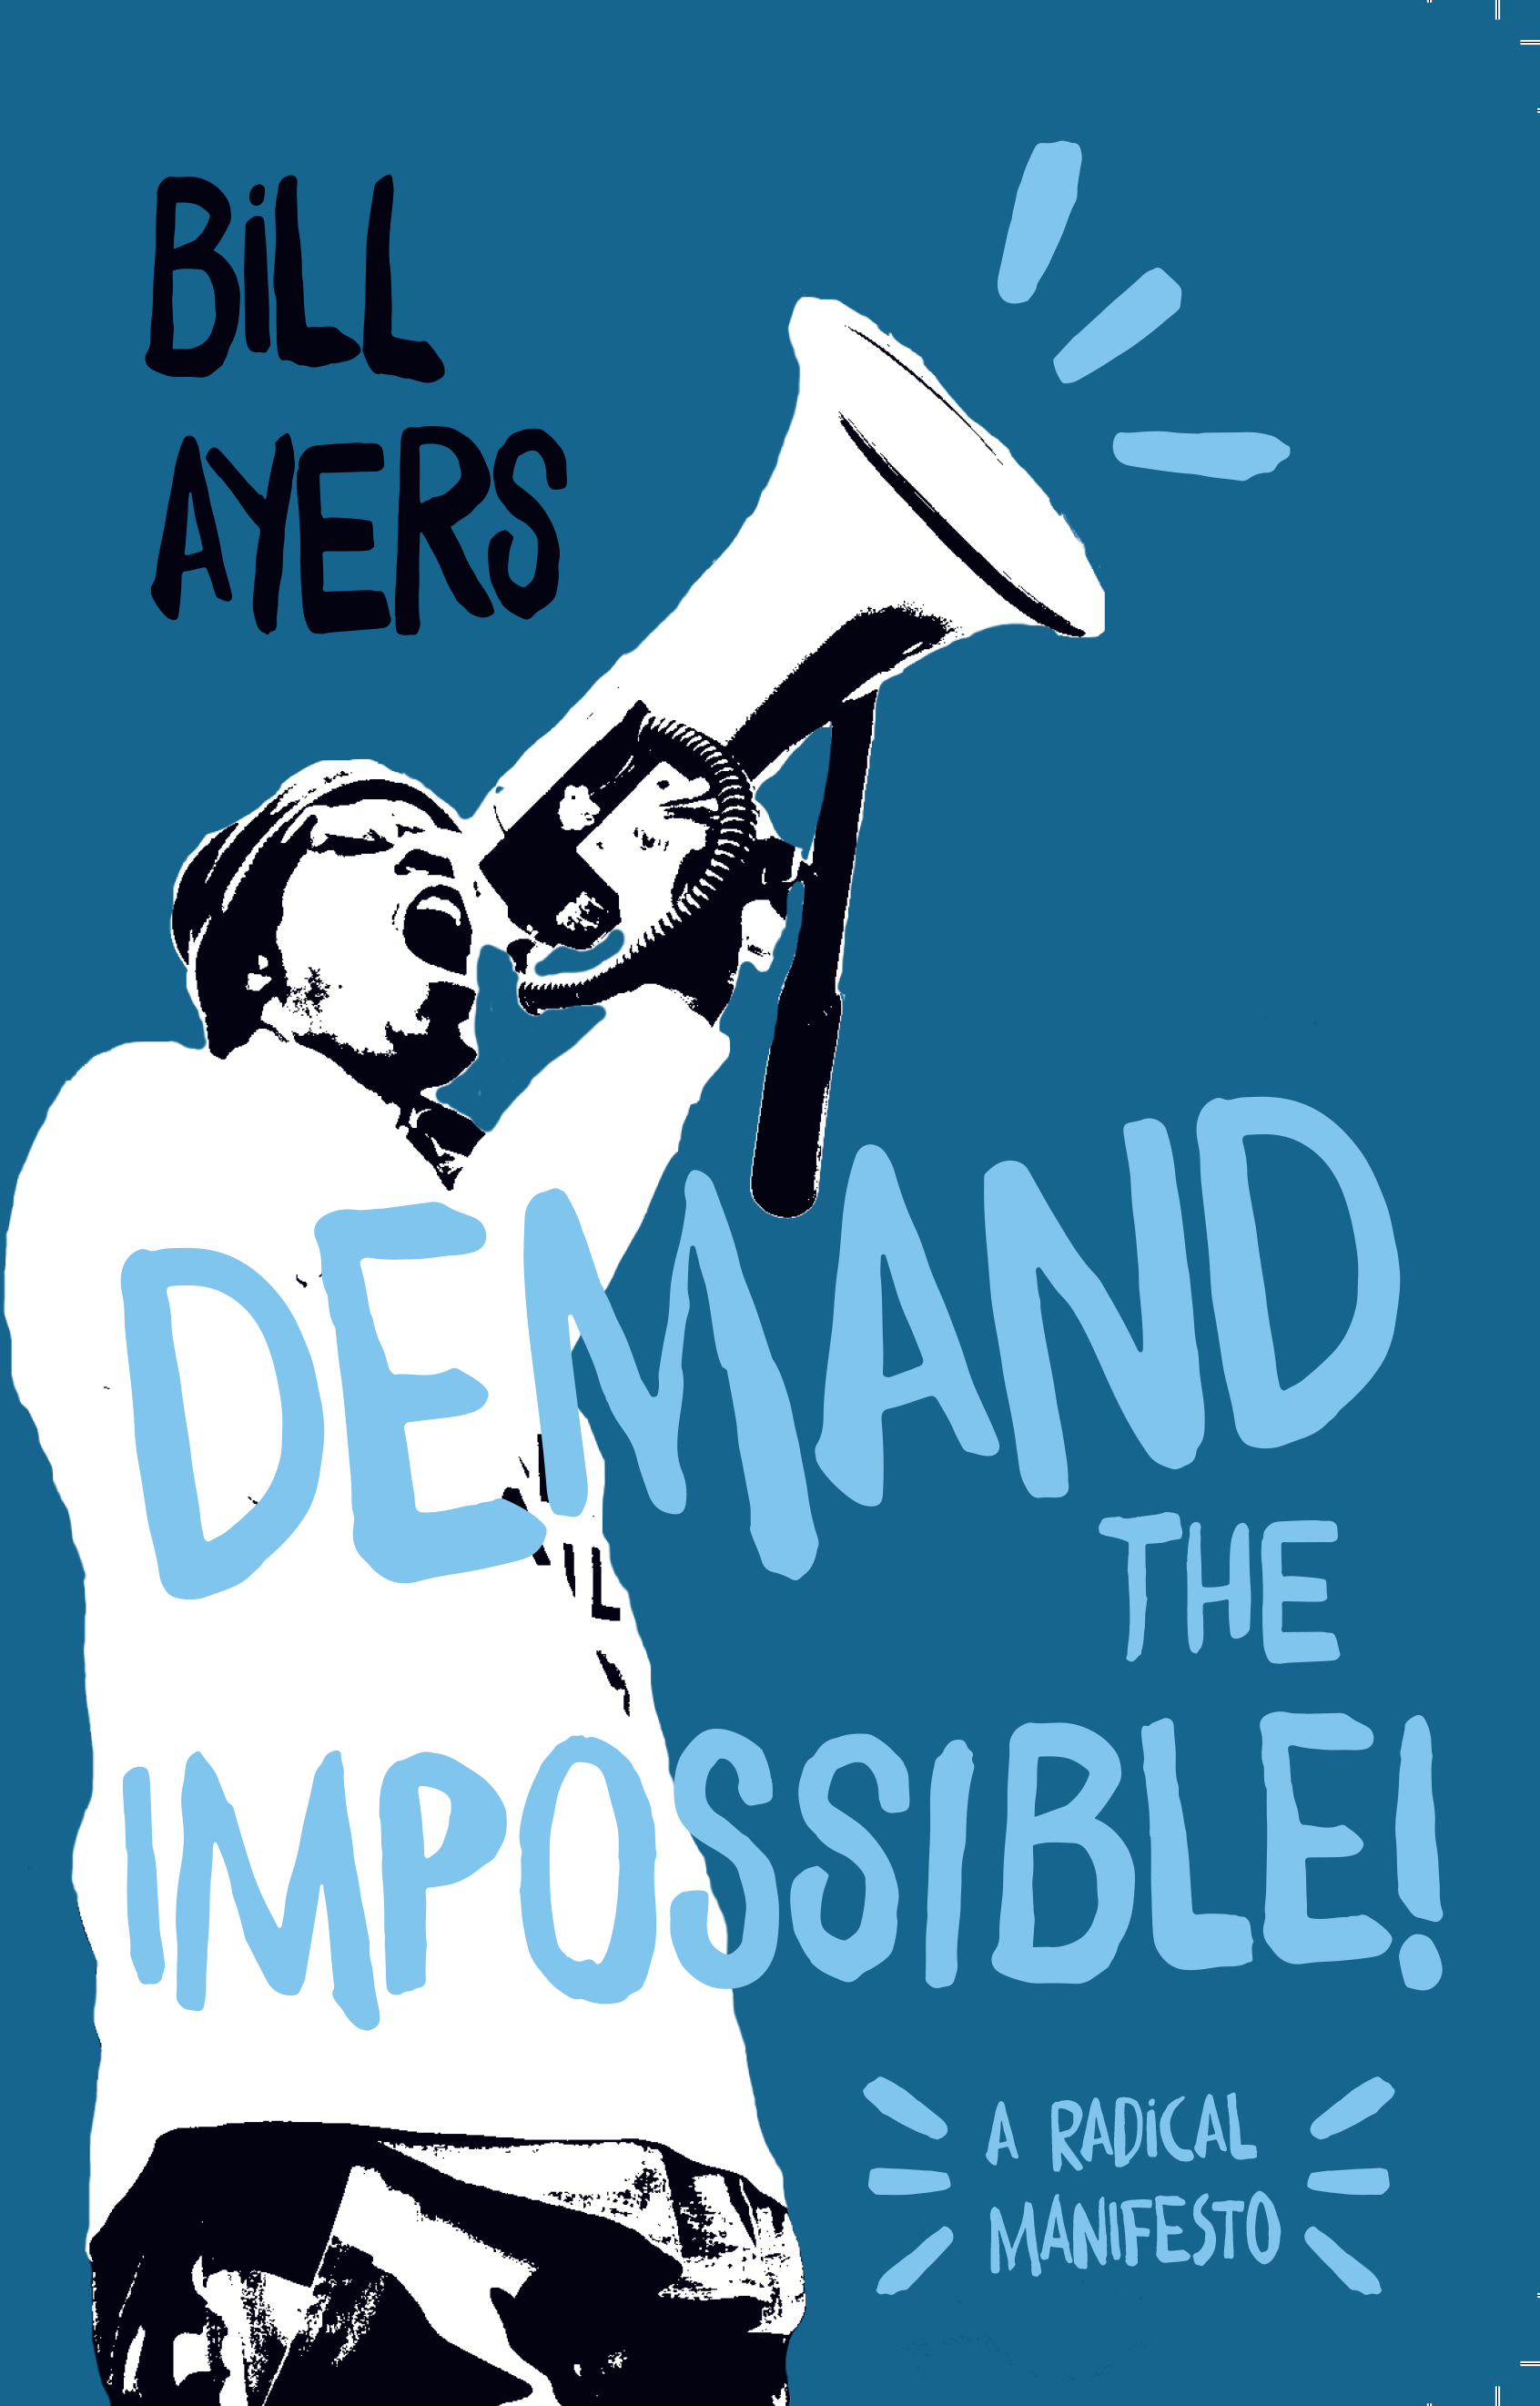 Bill Ayers - Demand the Impossible! A Radical Manifesto